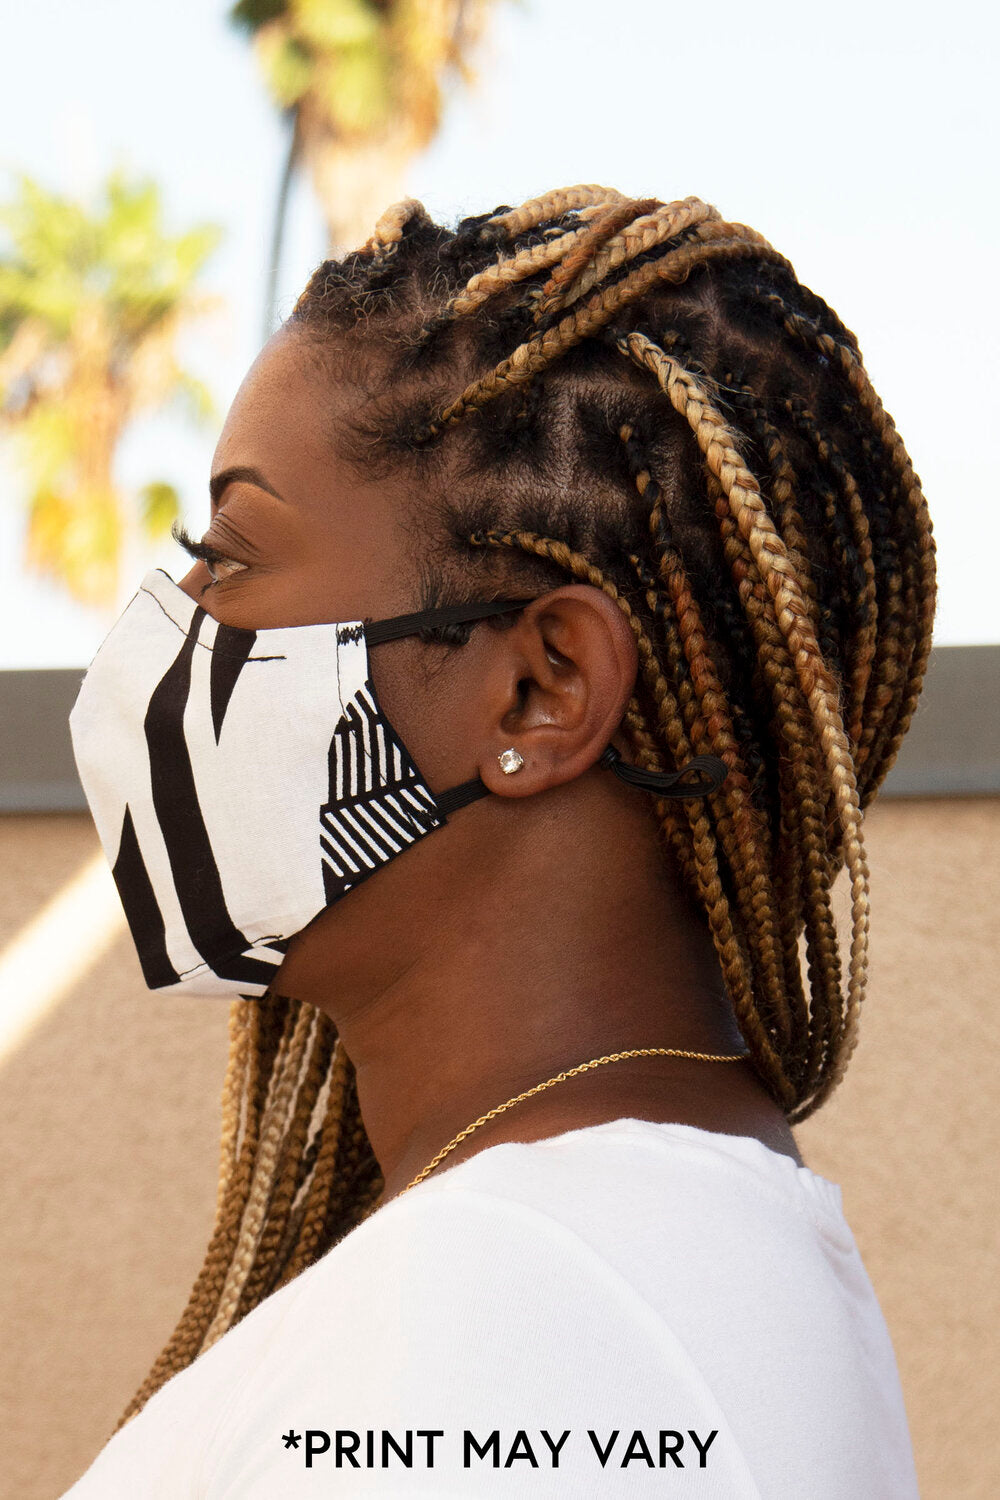 Black/White GEO Print Secure-Fit Face Mask - pacorogiene